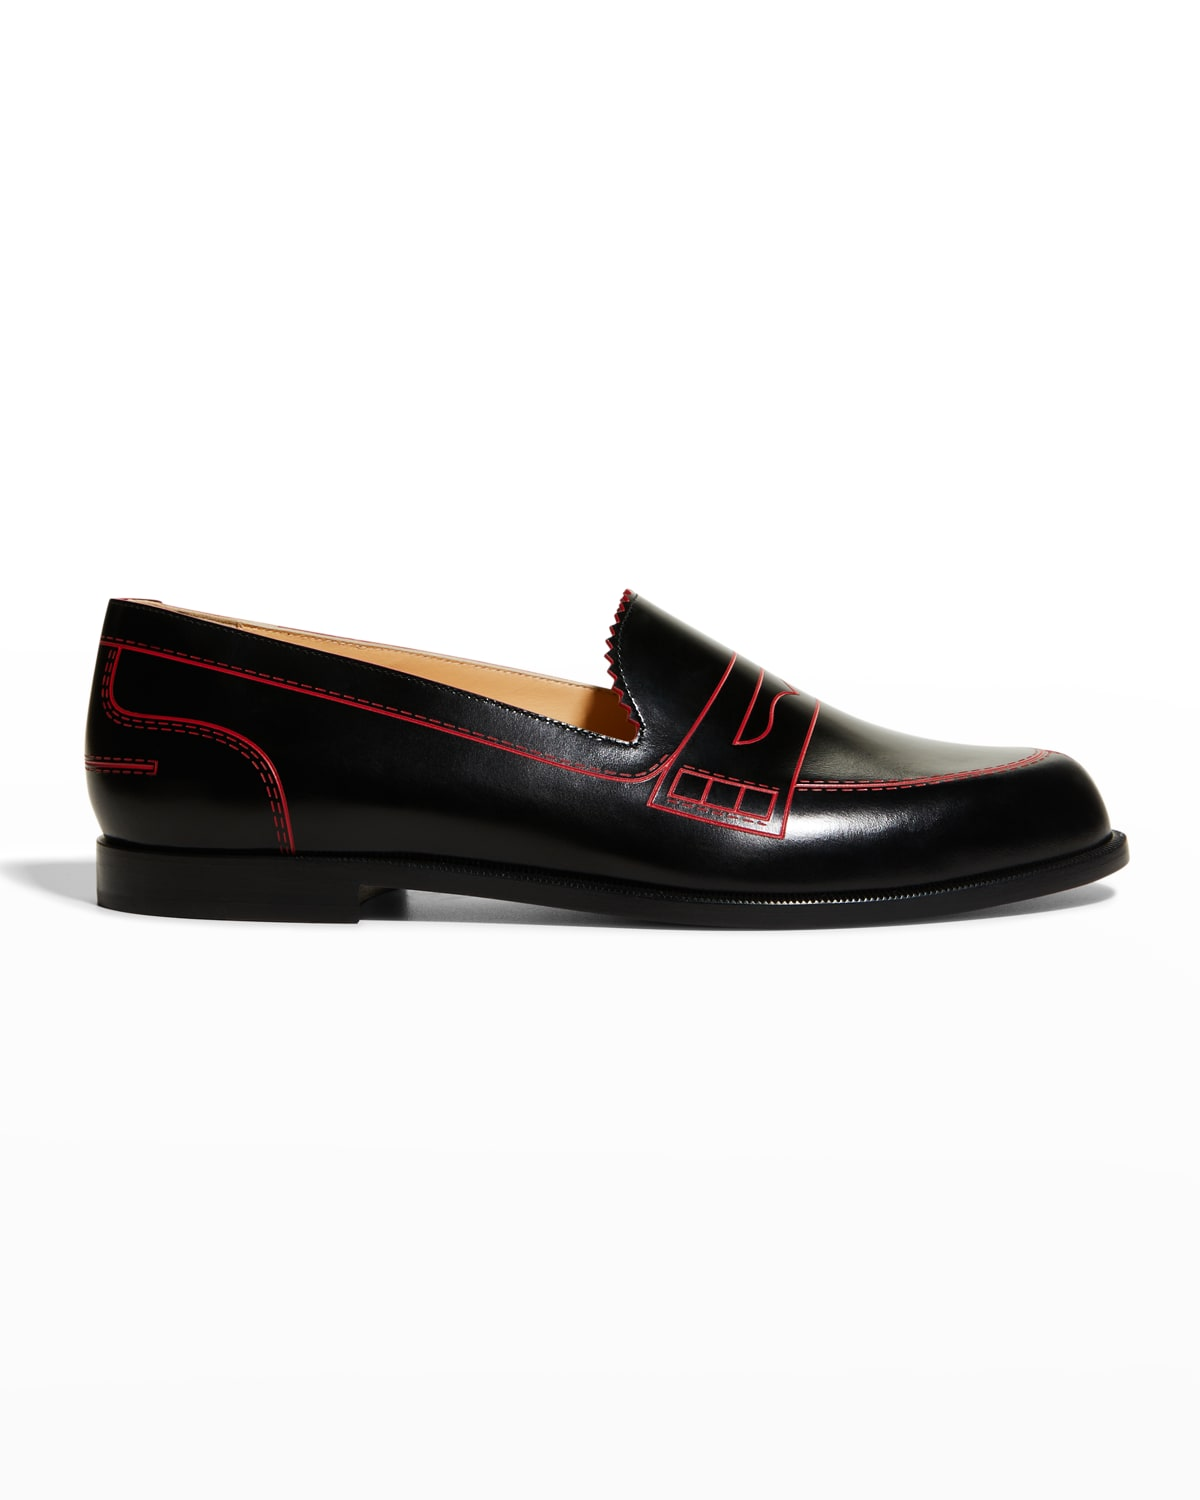 Mocalaureat Flat Red Sole Loafers